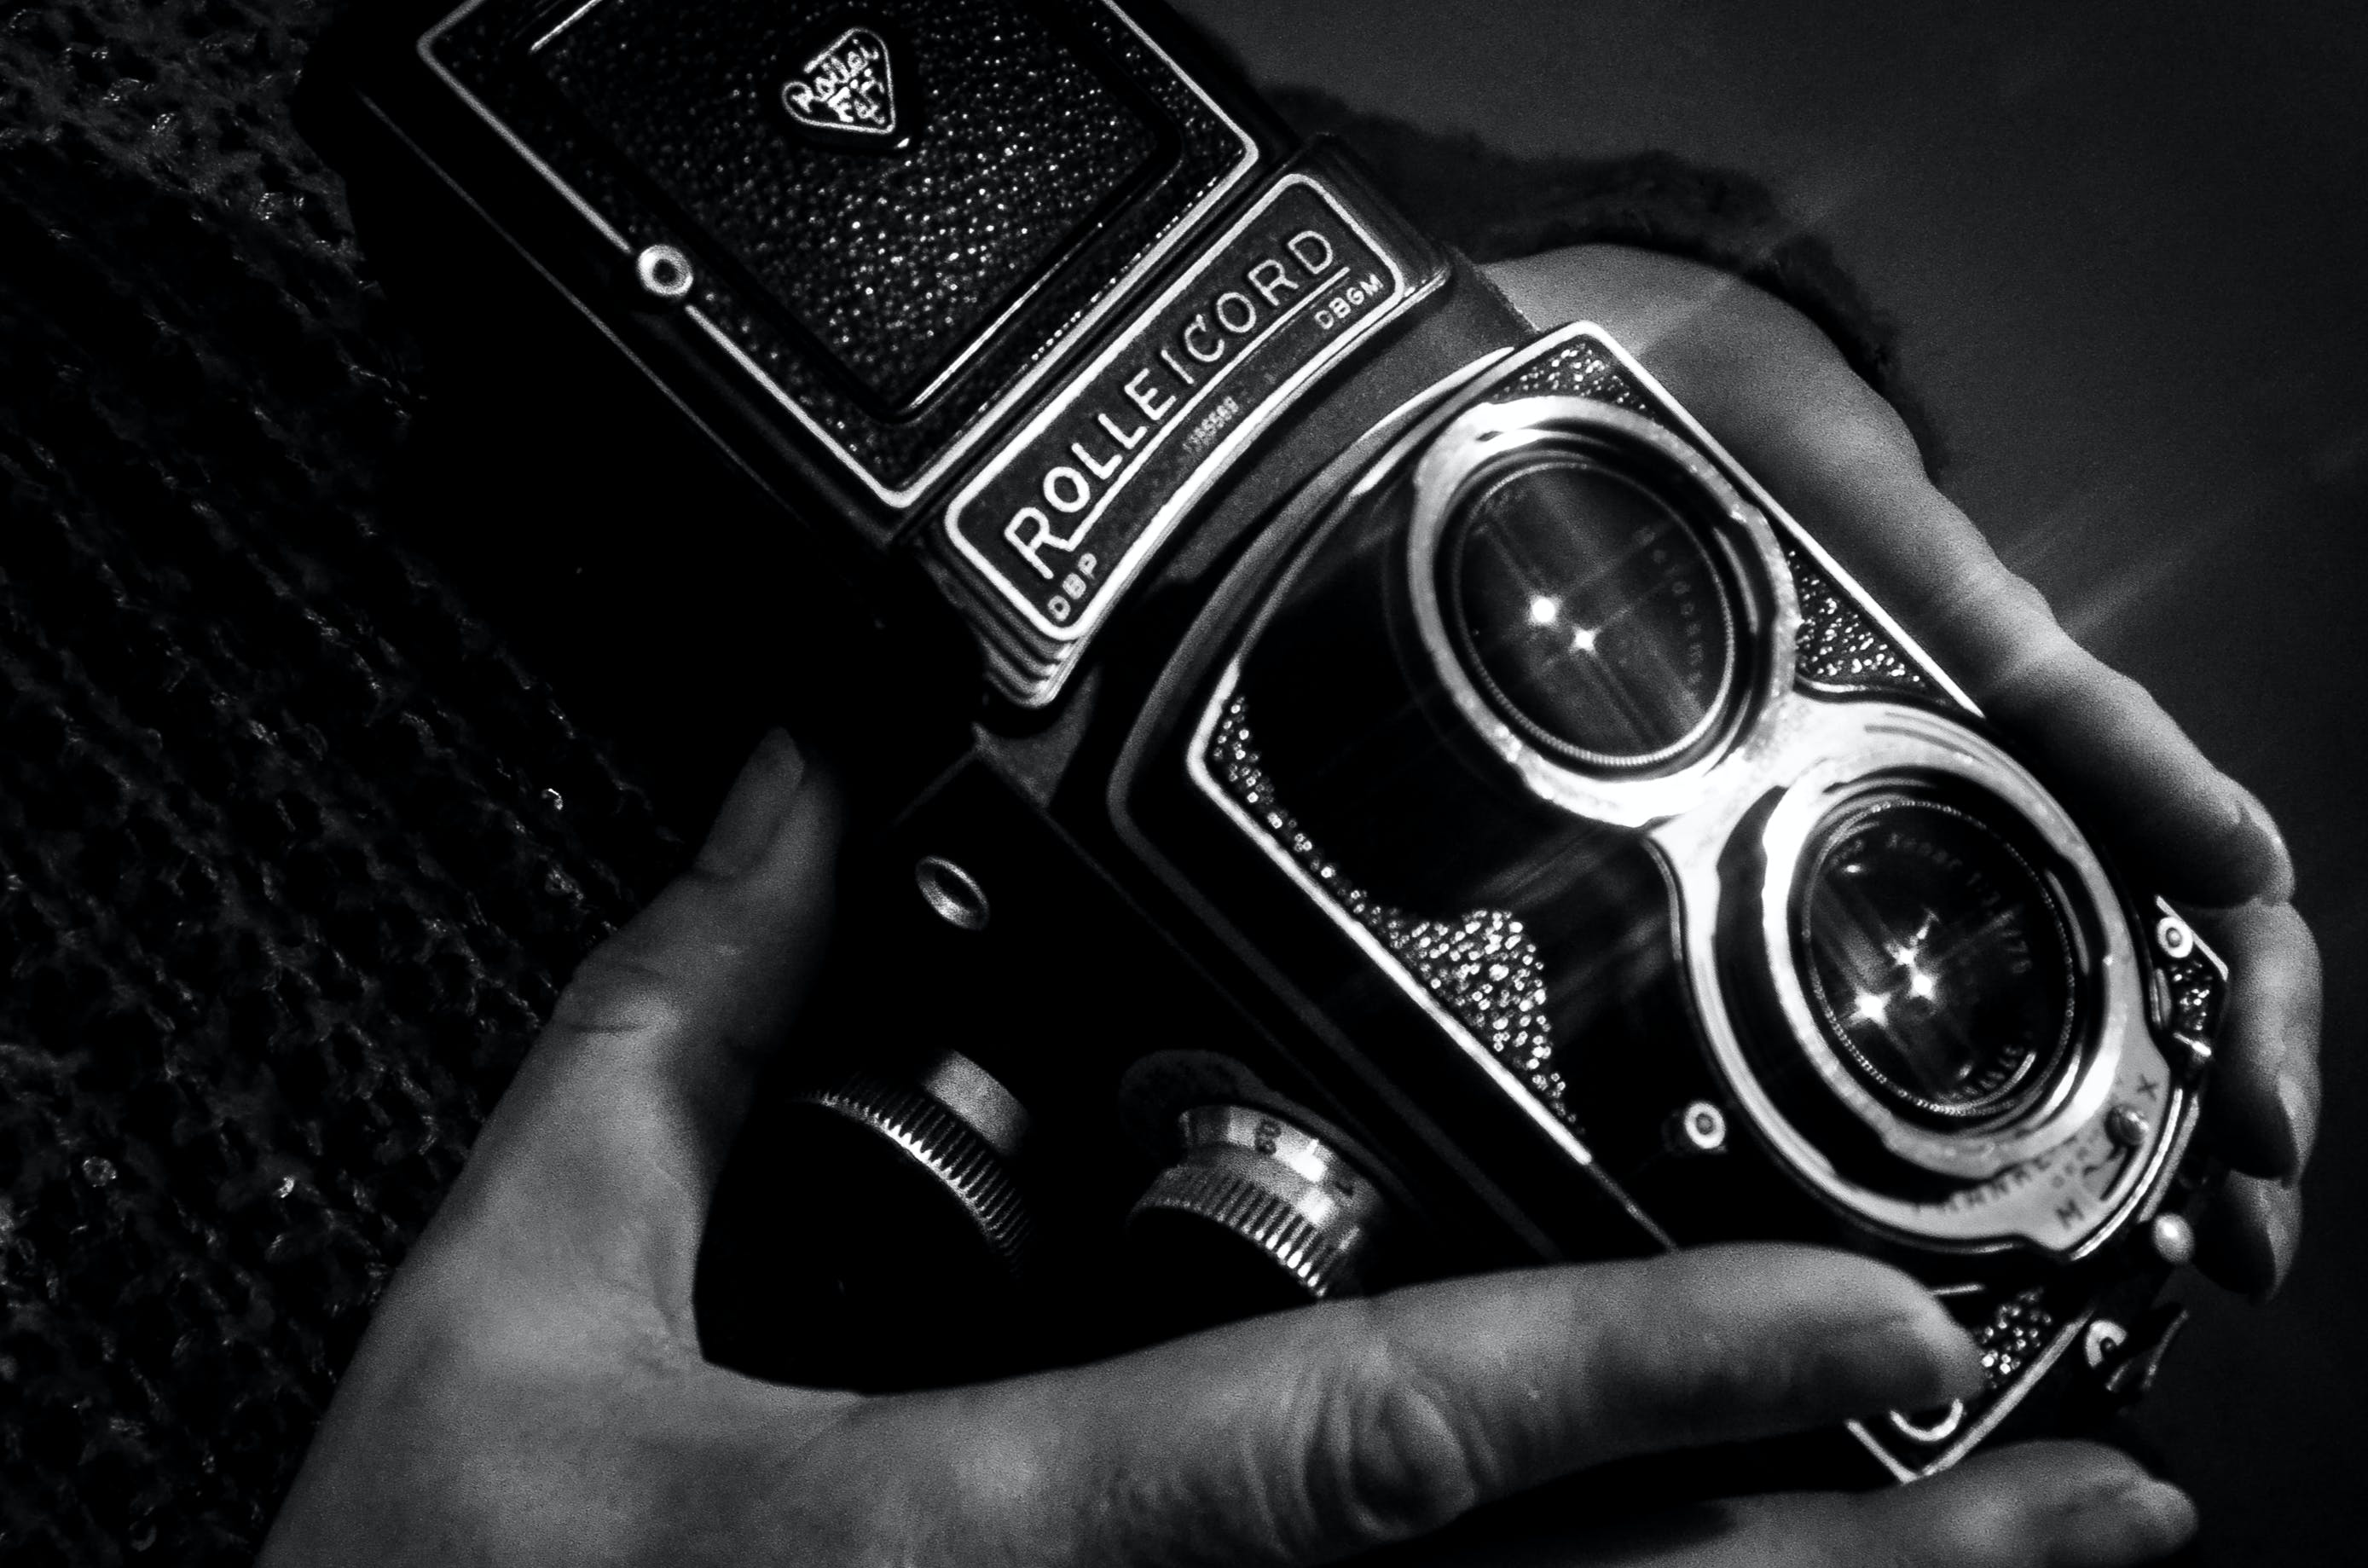 Grayscale Photography of Person Holding Rolleicord Camera